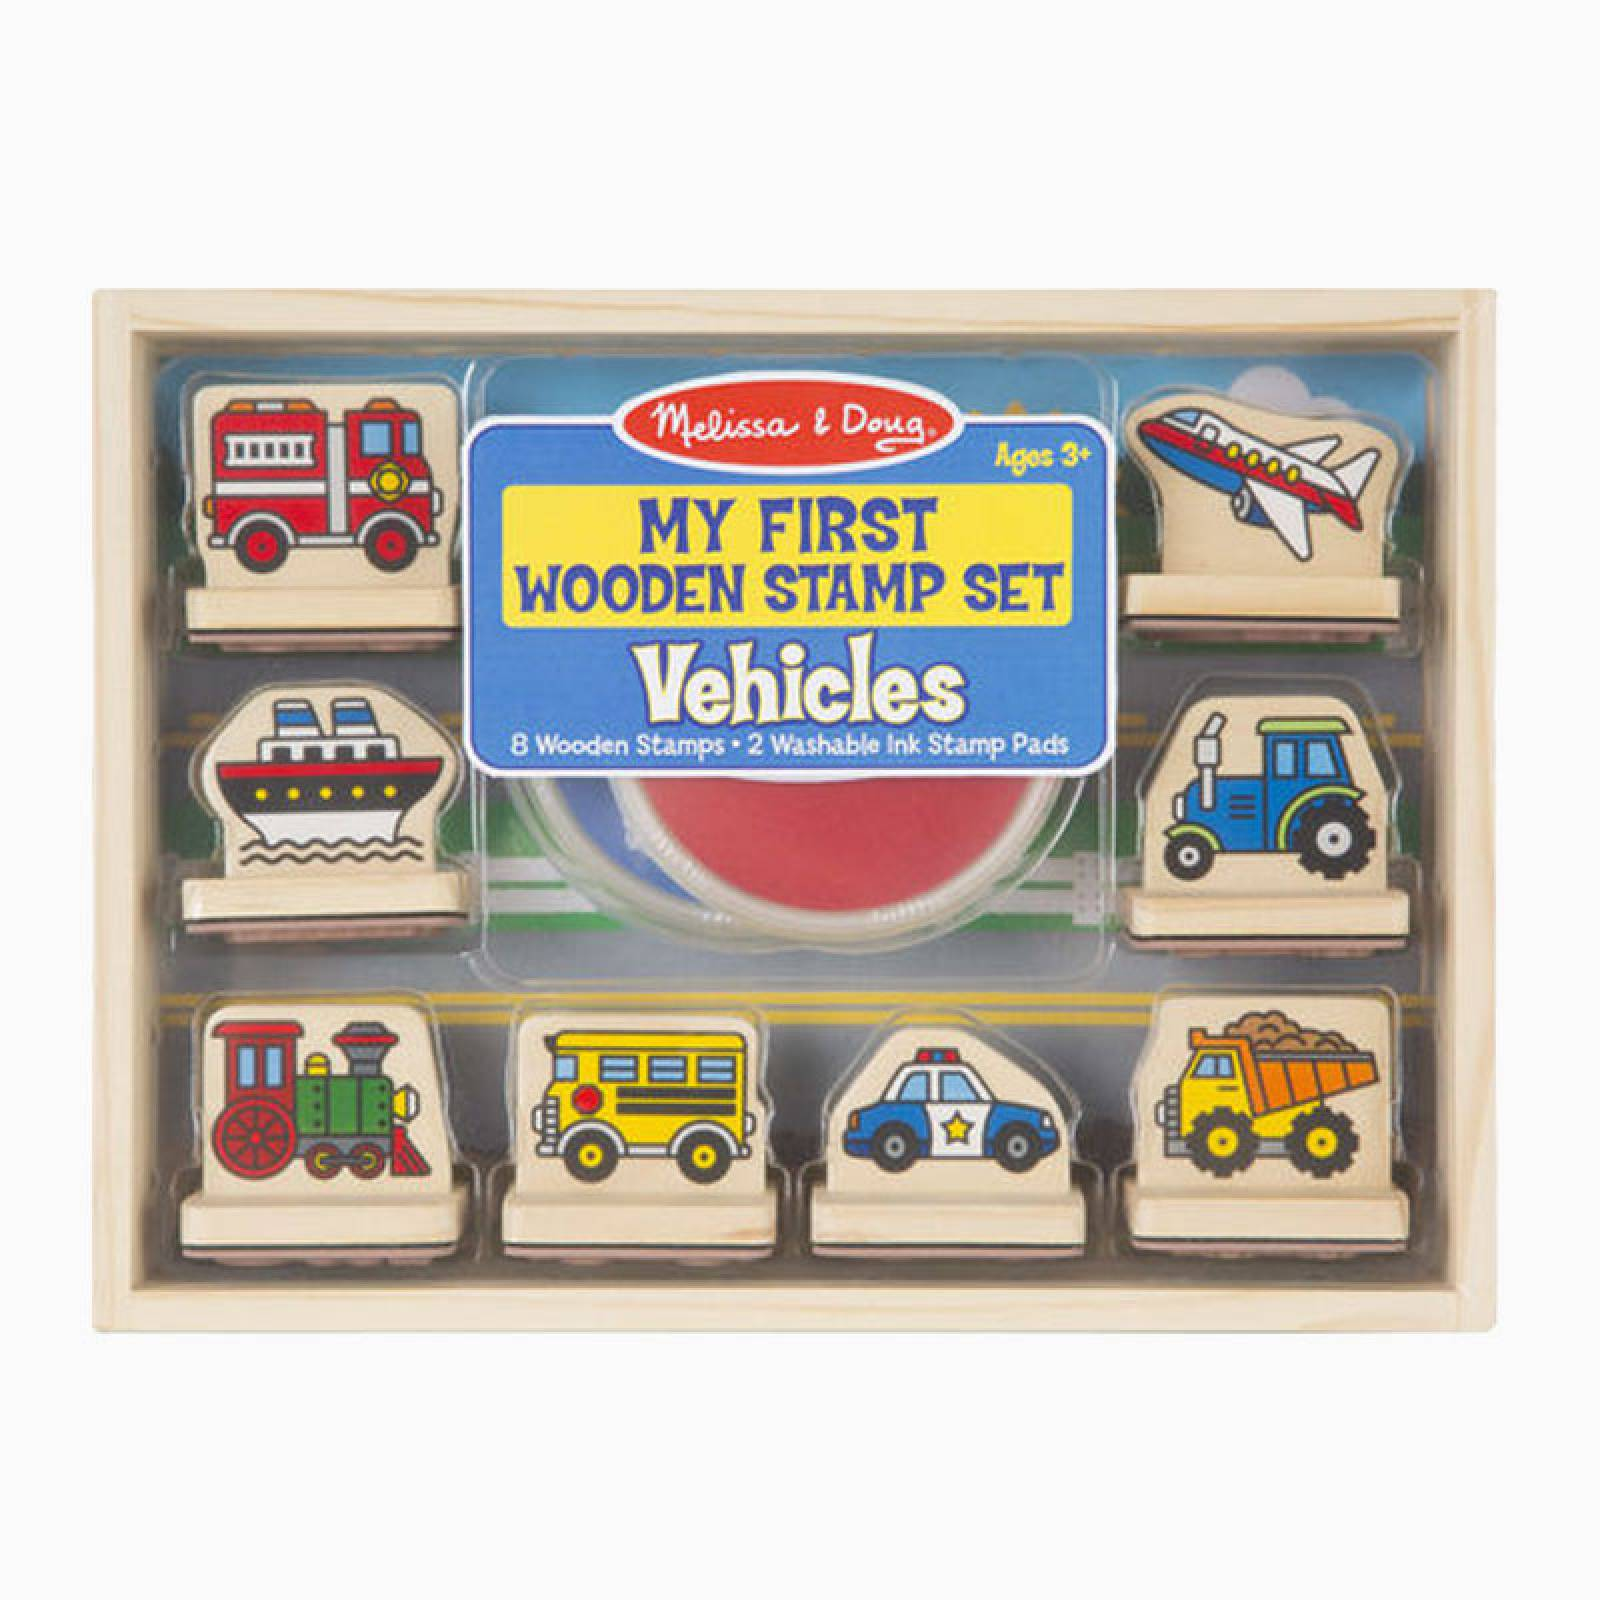 My First Wooden Stamp Set - Vehicles 3+ thumbnails